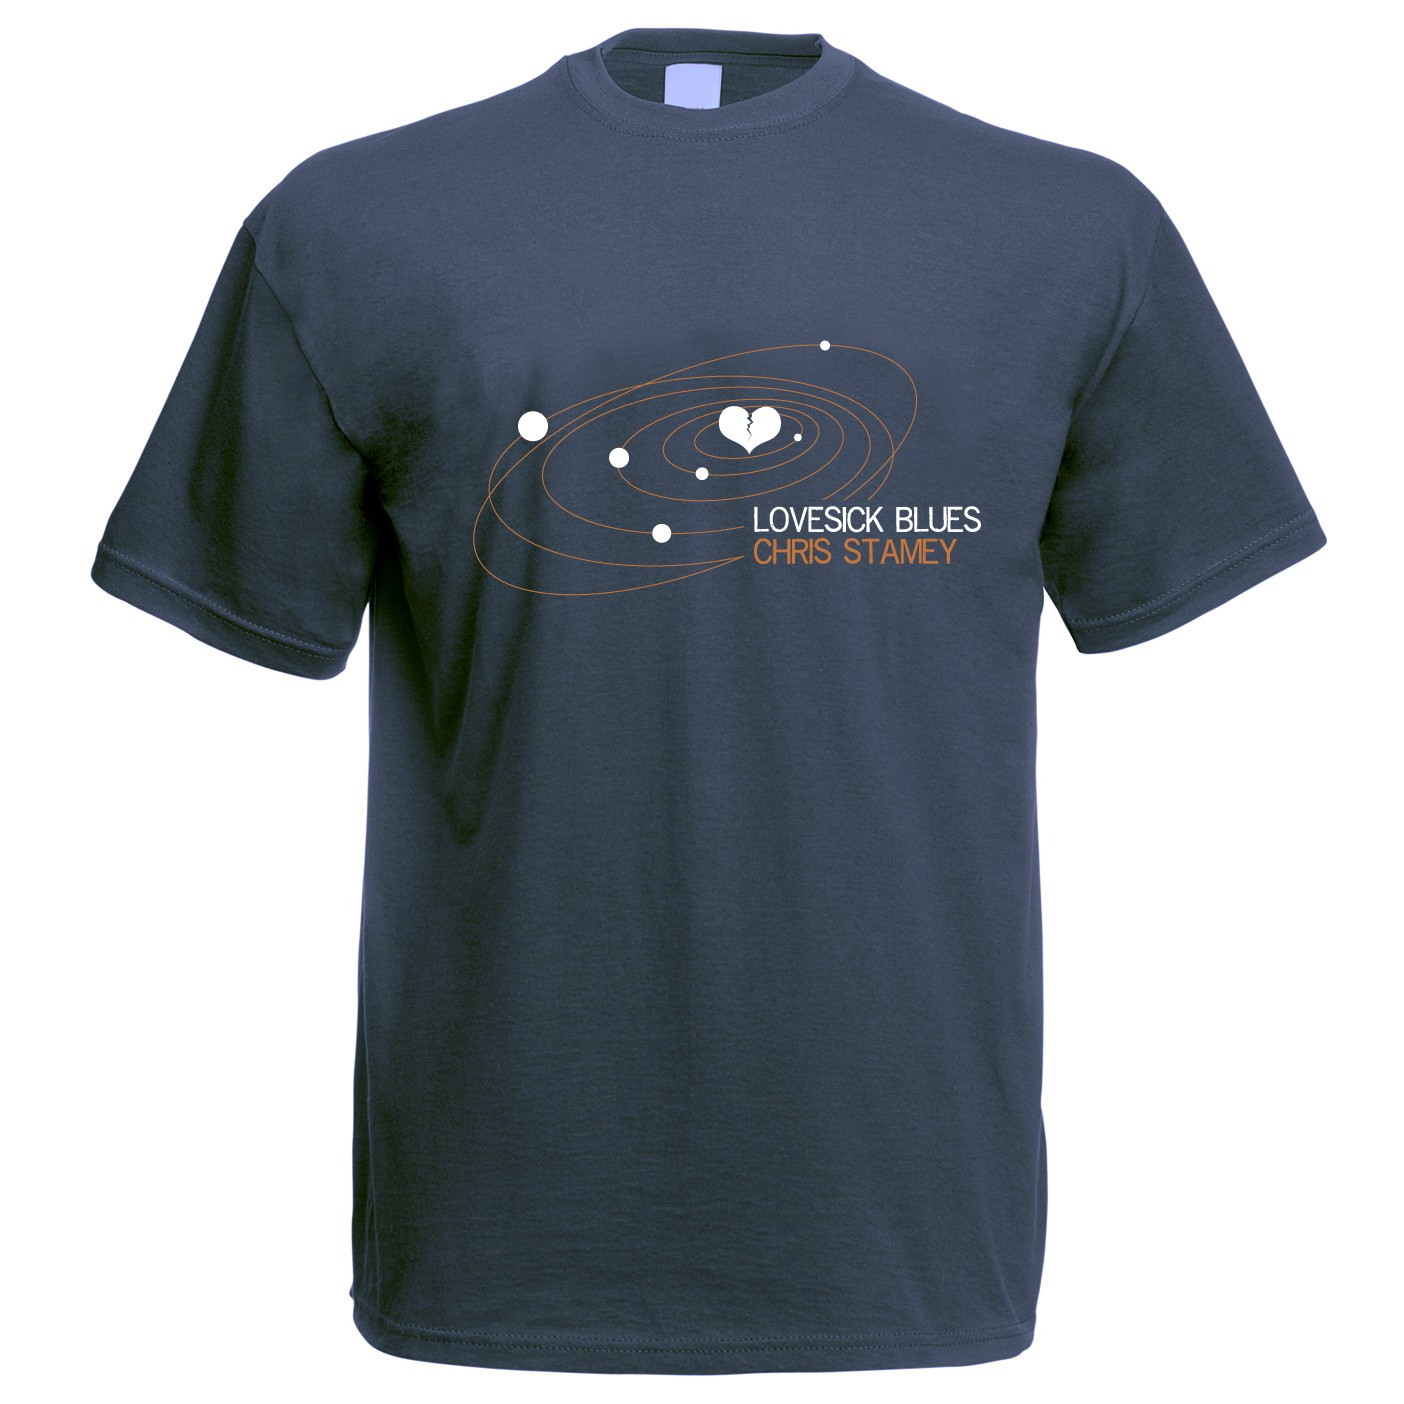 Chris Stamey - Lovesick Blues - T-Shirt